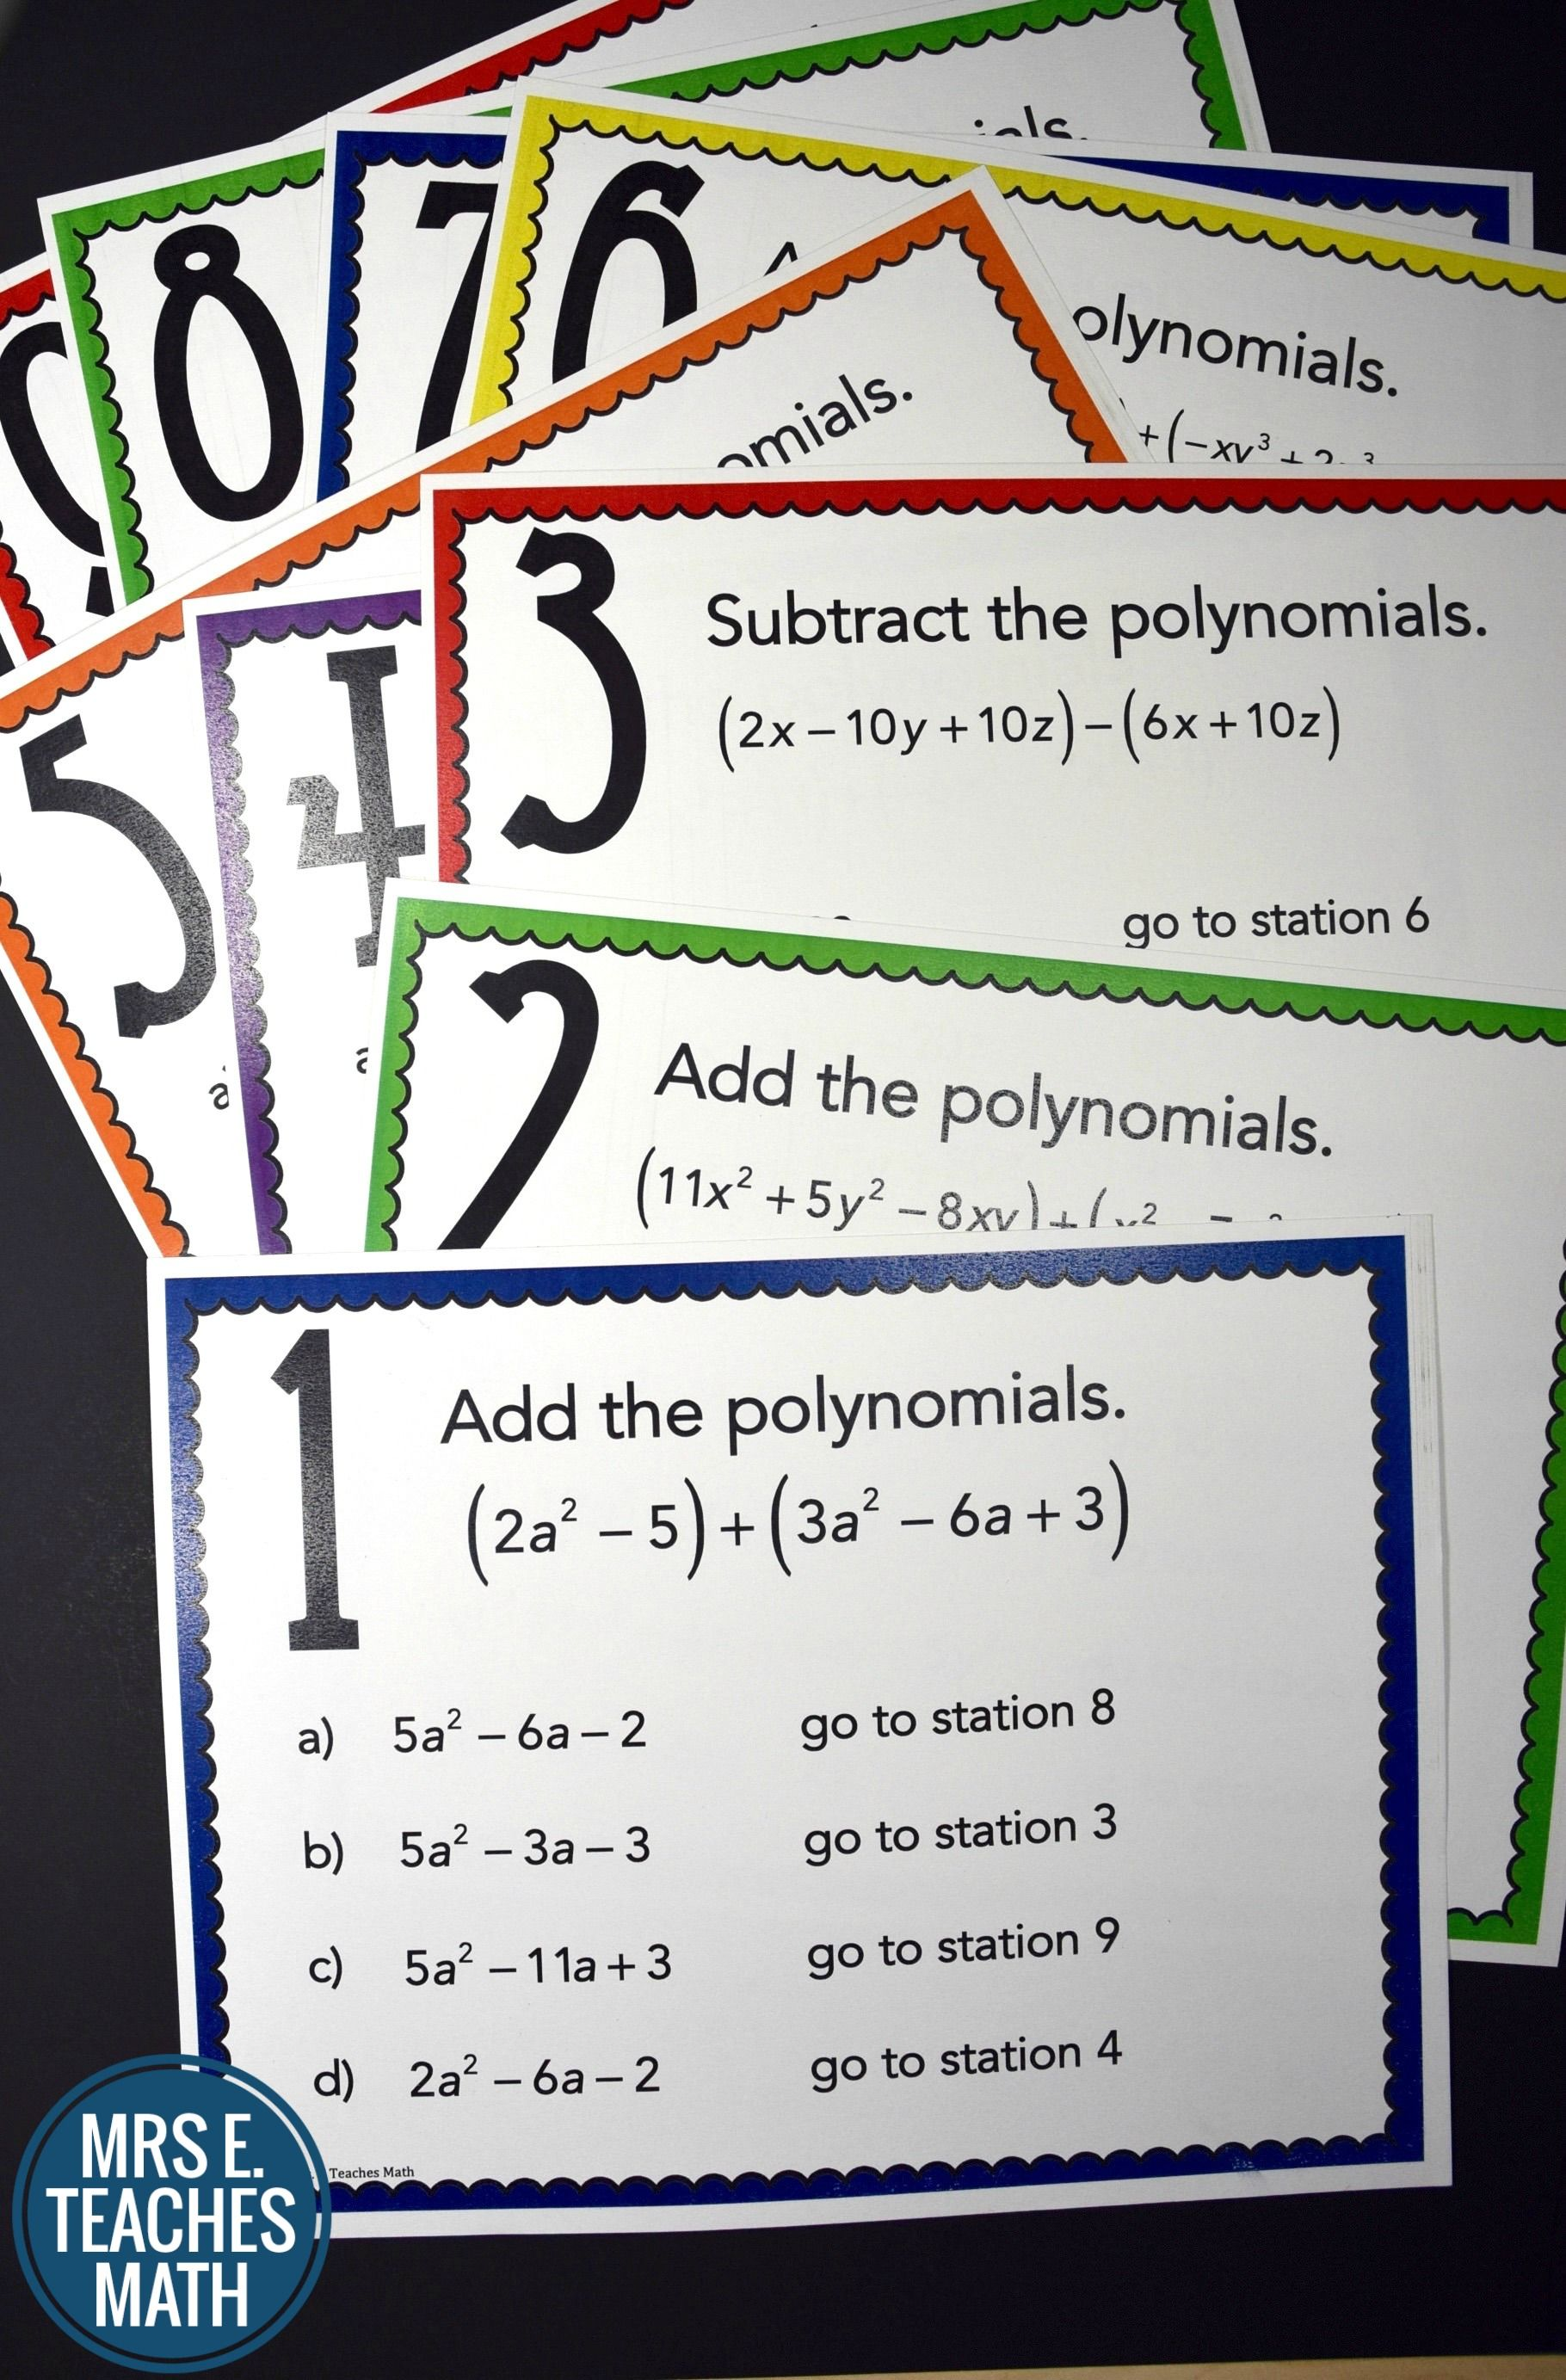 Add And Subtract Polynomials Stations Maze Activity School